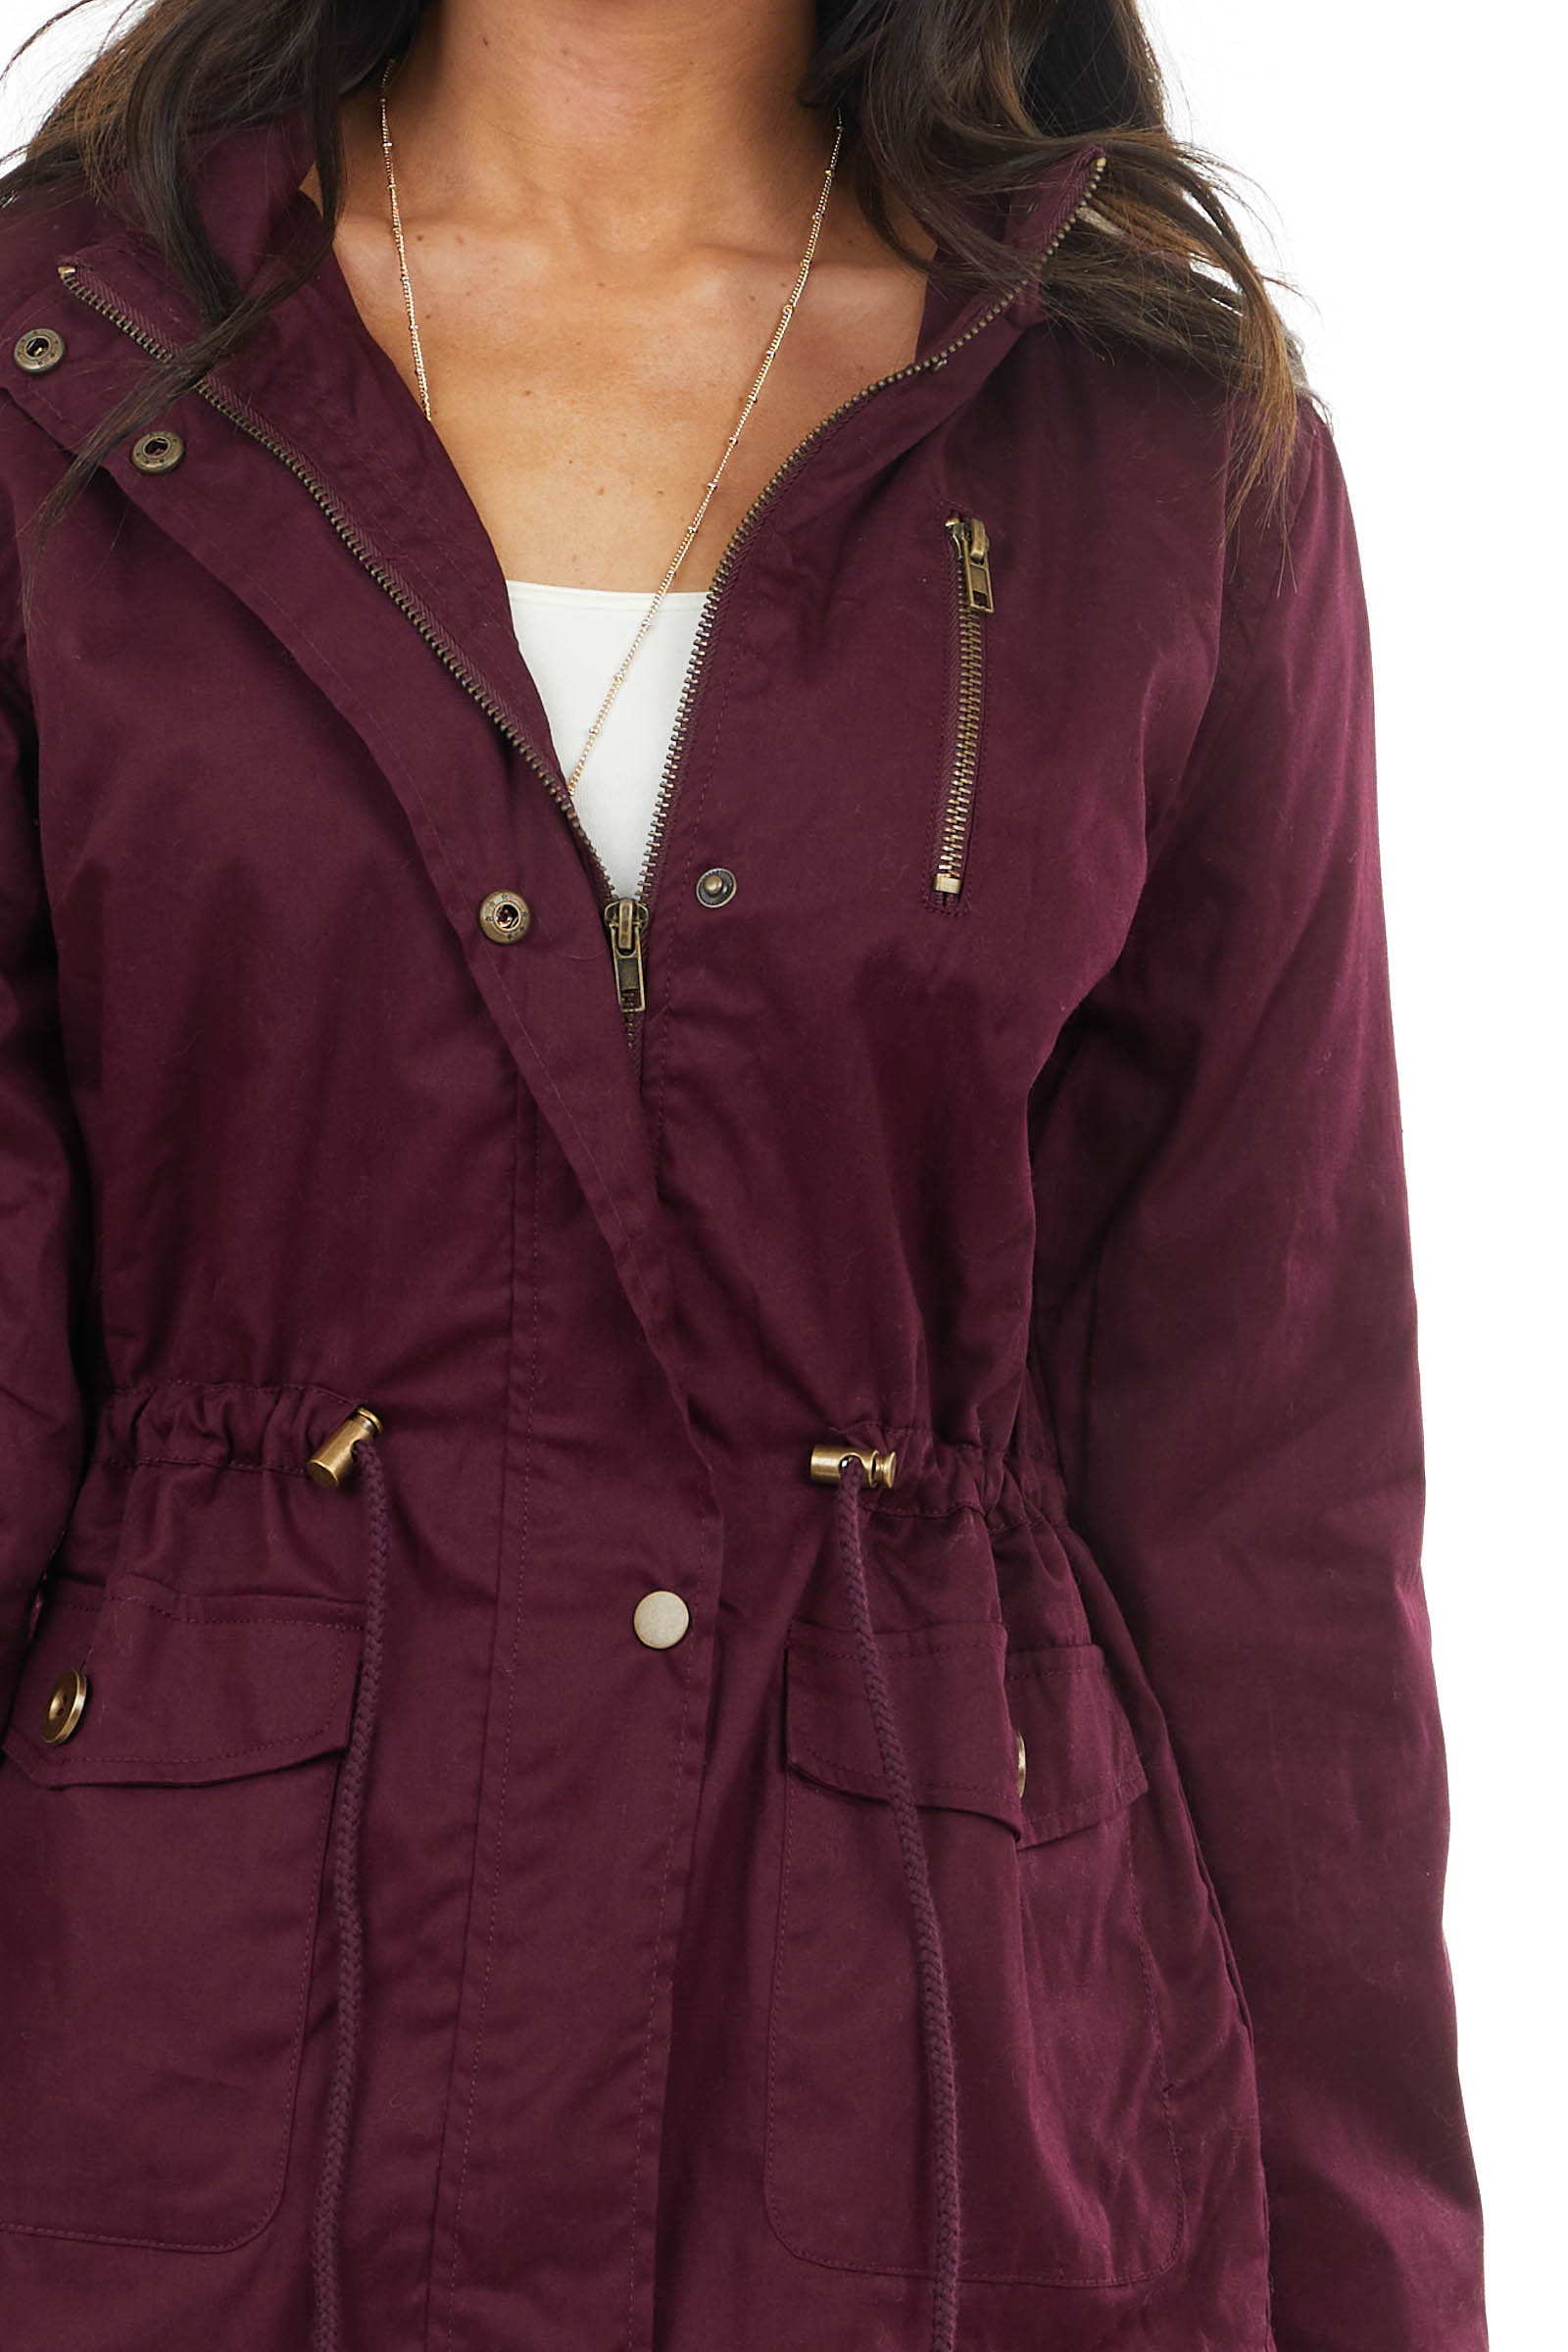 Mulberry Anorak Jacket with Faux Fur Lining and Front Tie